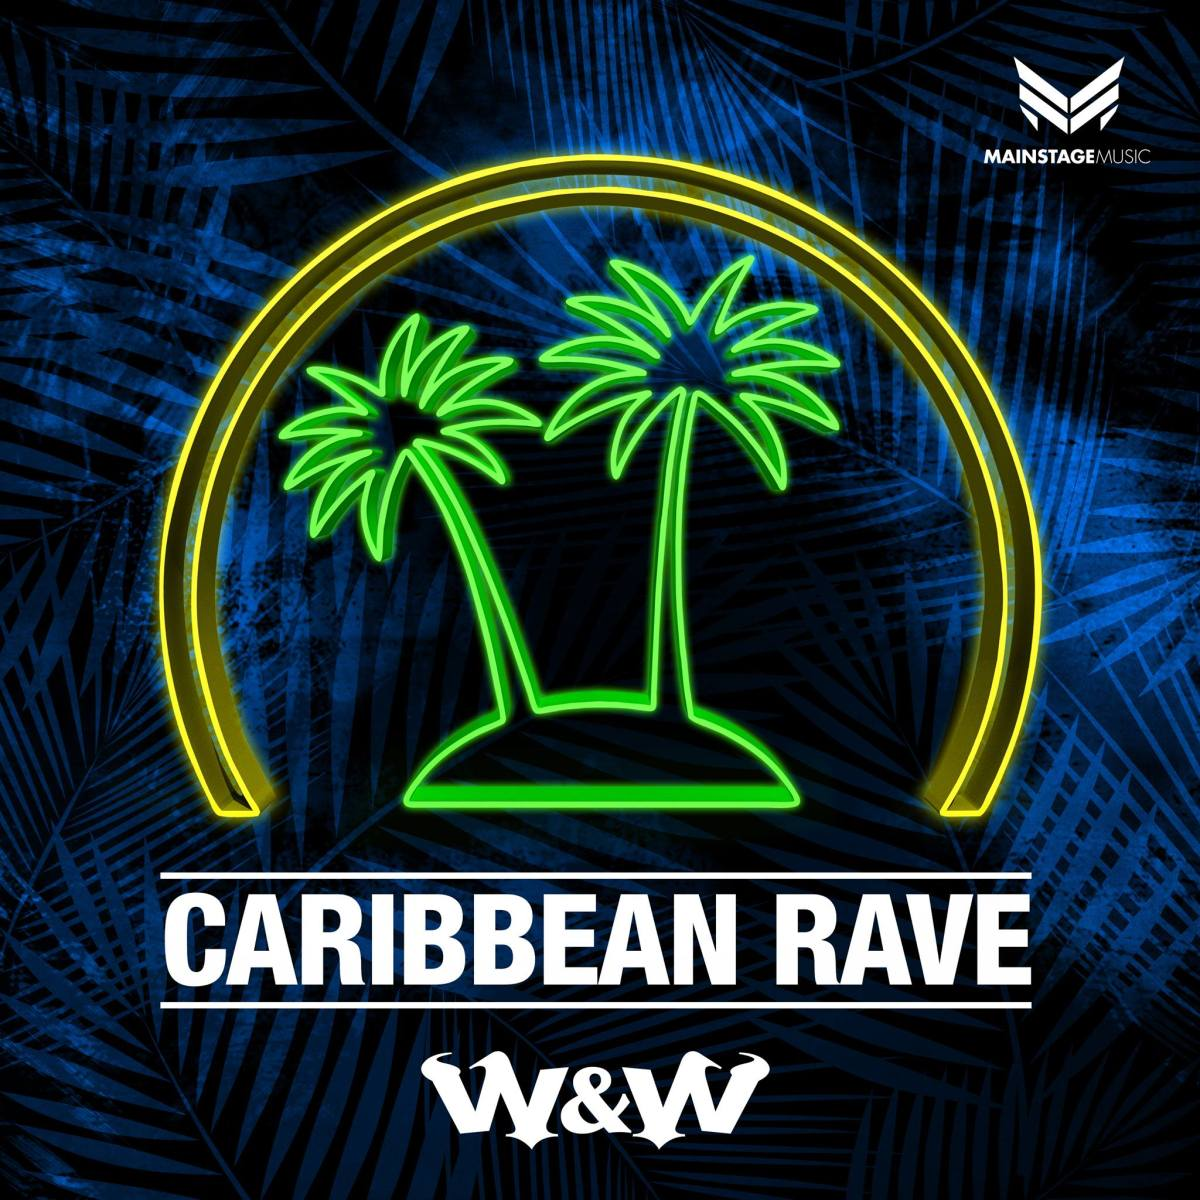 W&W - Caribbean Rave [Mainstage Music]